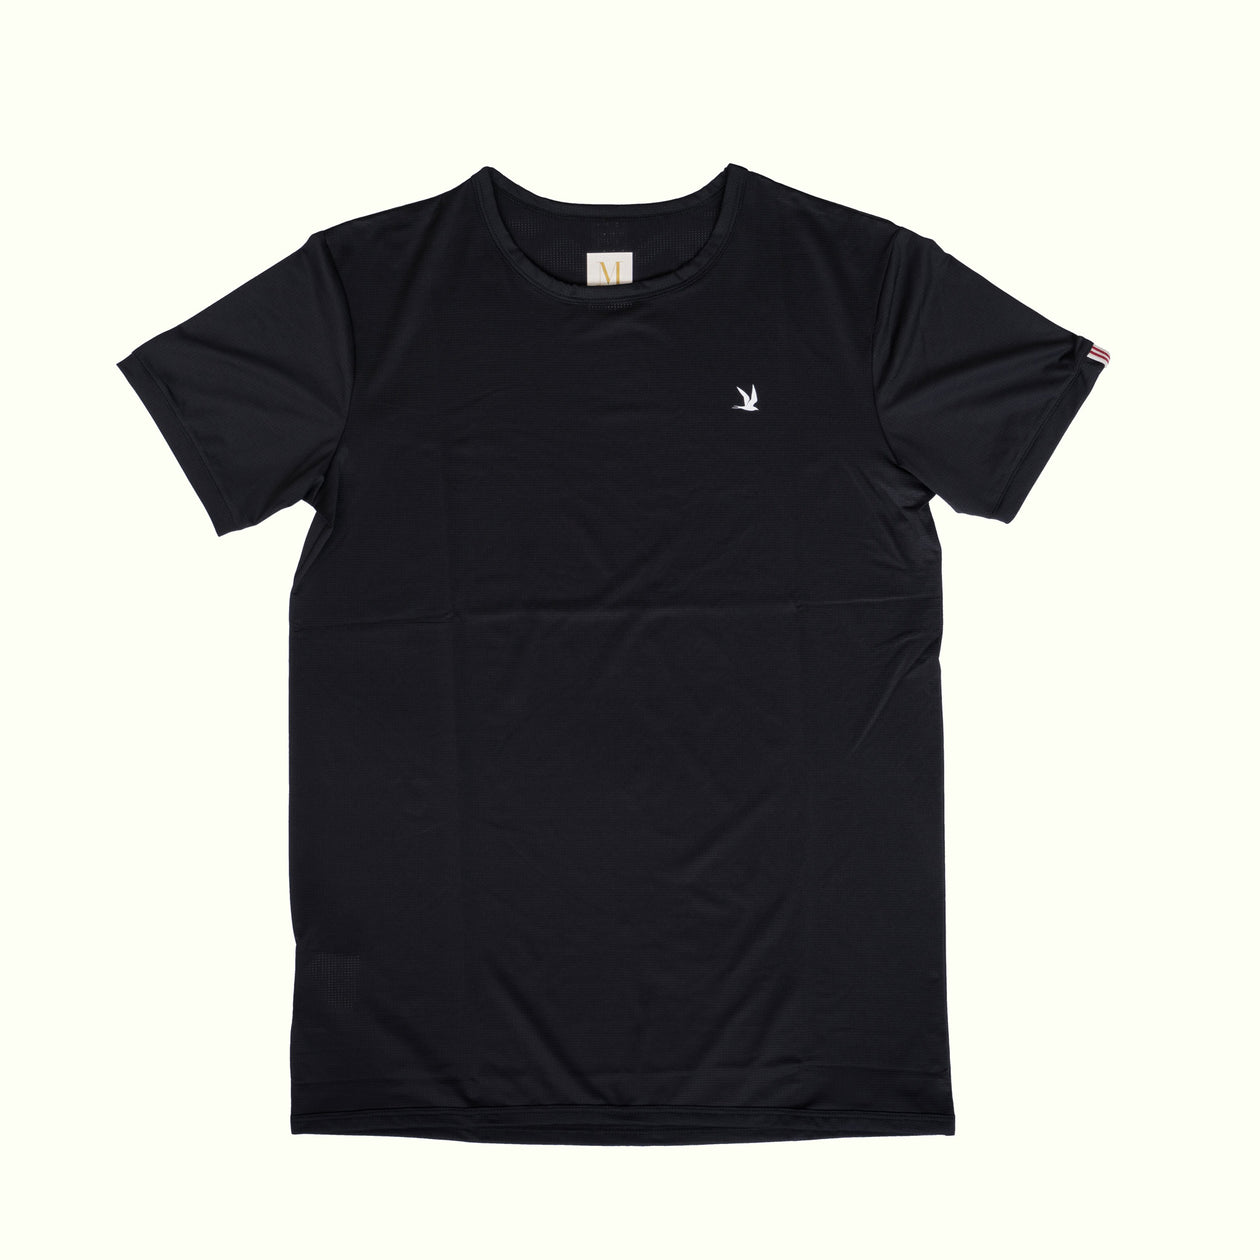 SYNTHETIC 'OVERLANDER' TEE